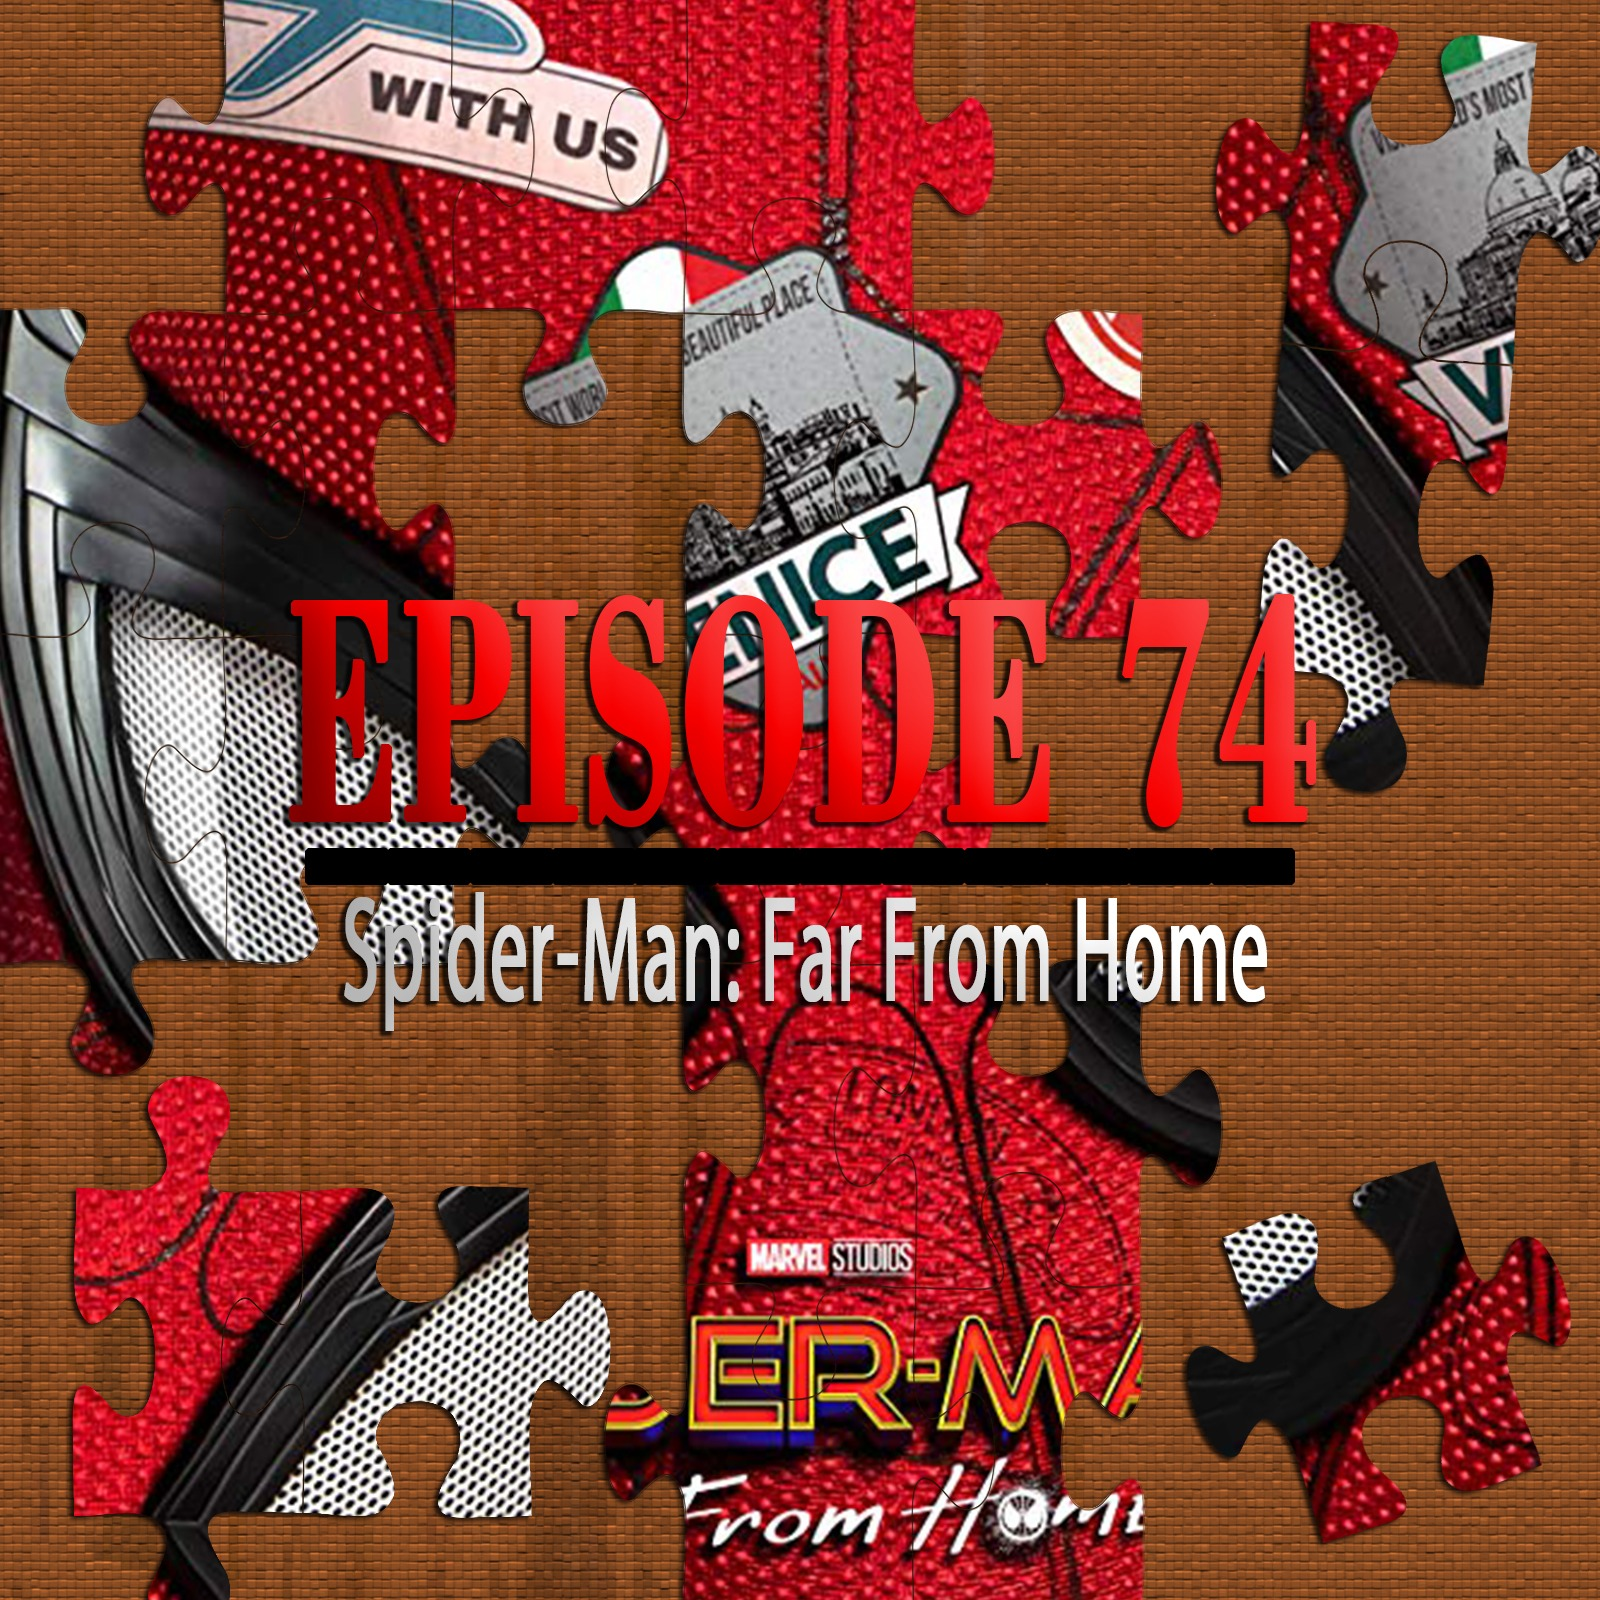 Spider-Man: Far From Home (Featuring Bill Lambusta)